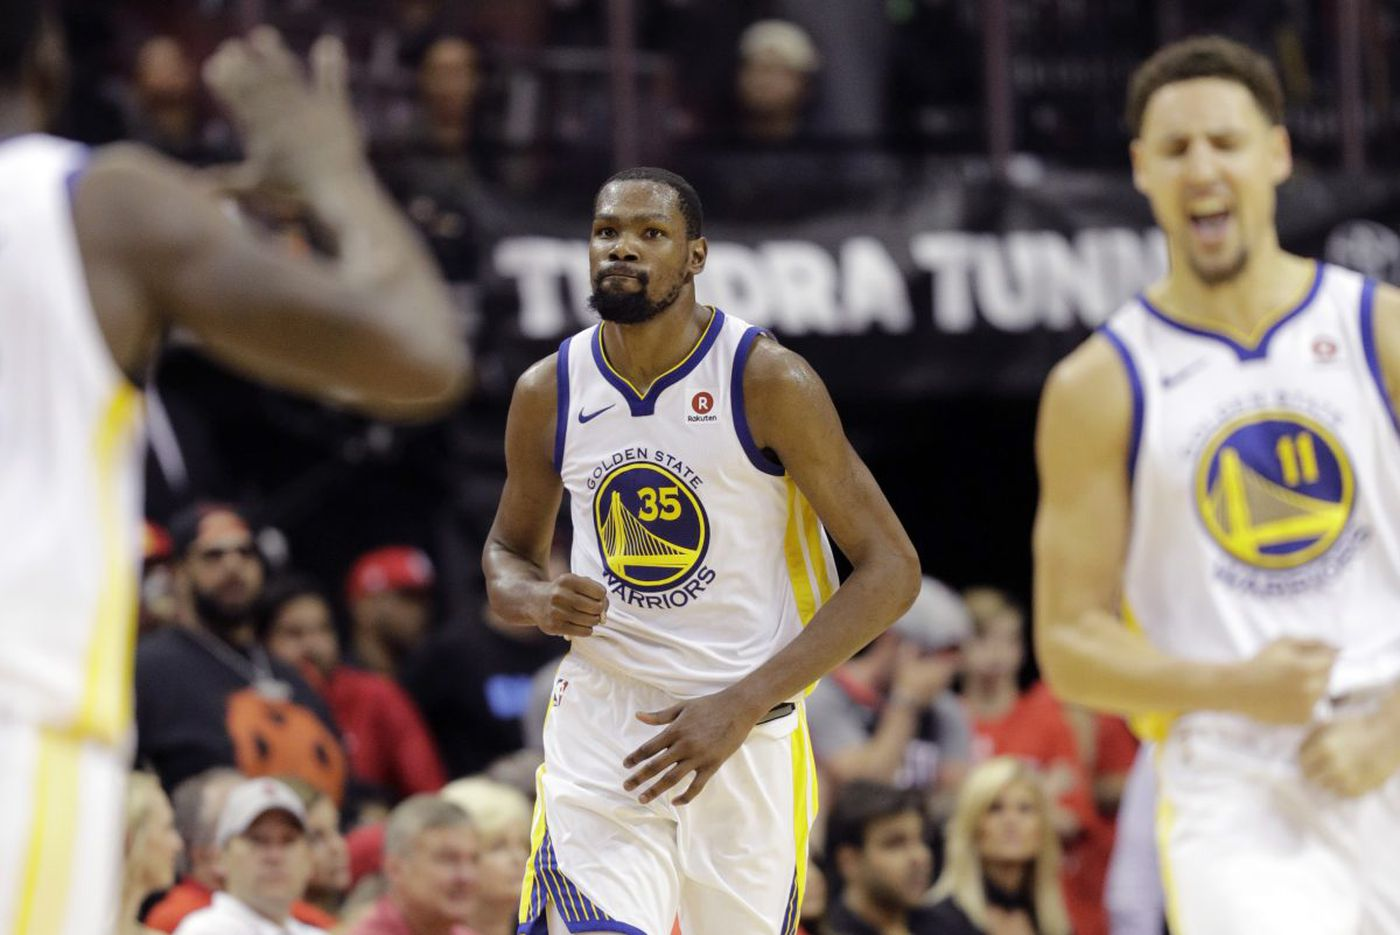 NBA Shootaround: Warriors-Cavaliers rematch is set after Kevin Durant leads Golden State past Rockets, Nick Young is ready to turn up